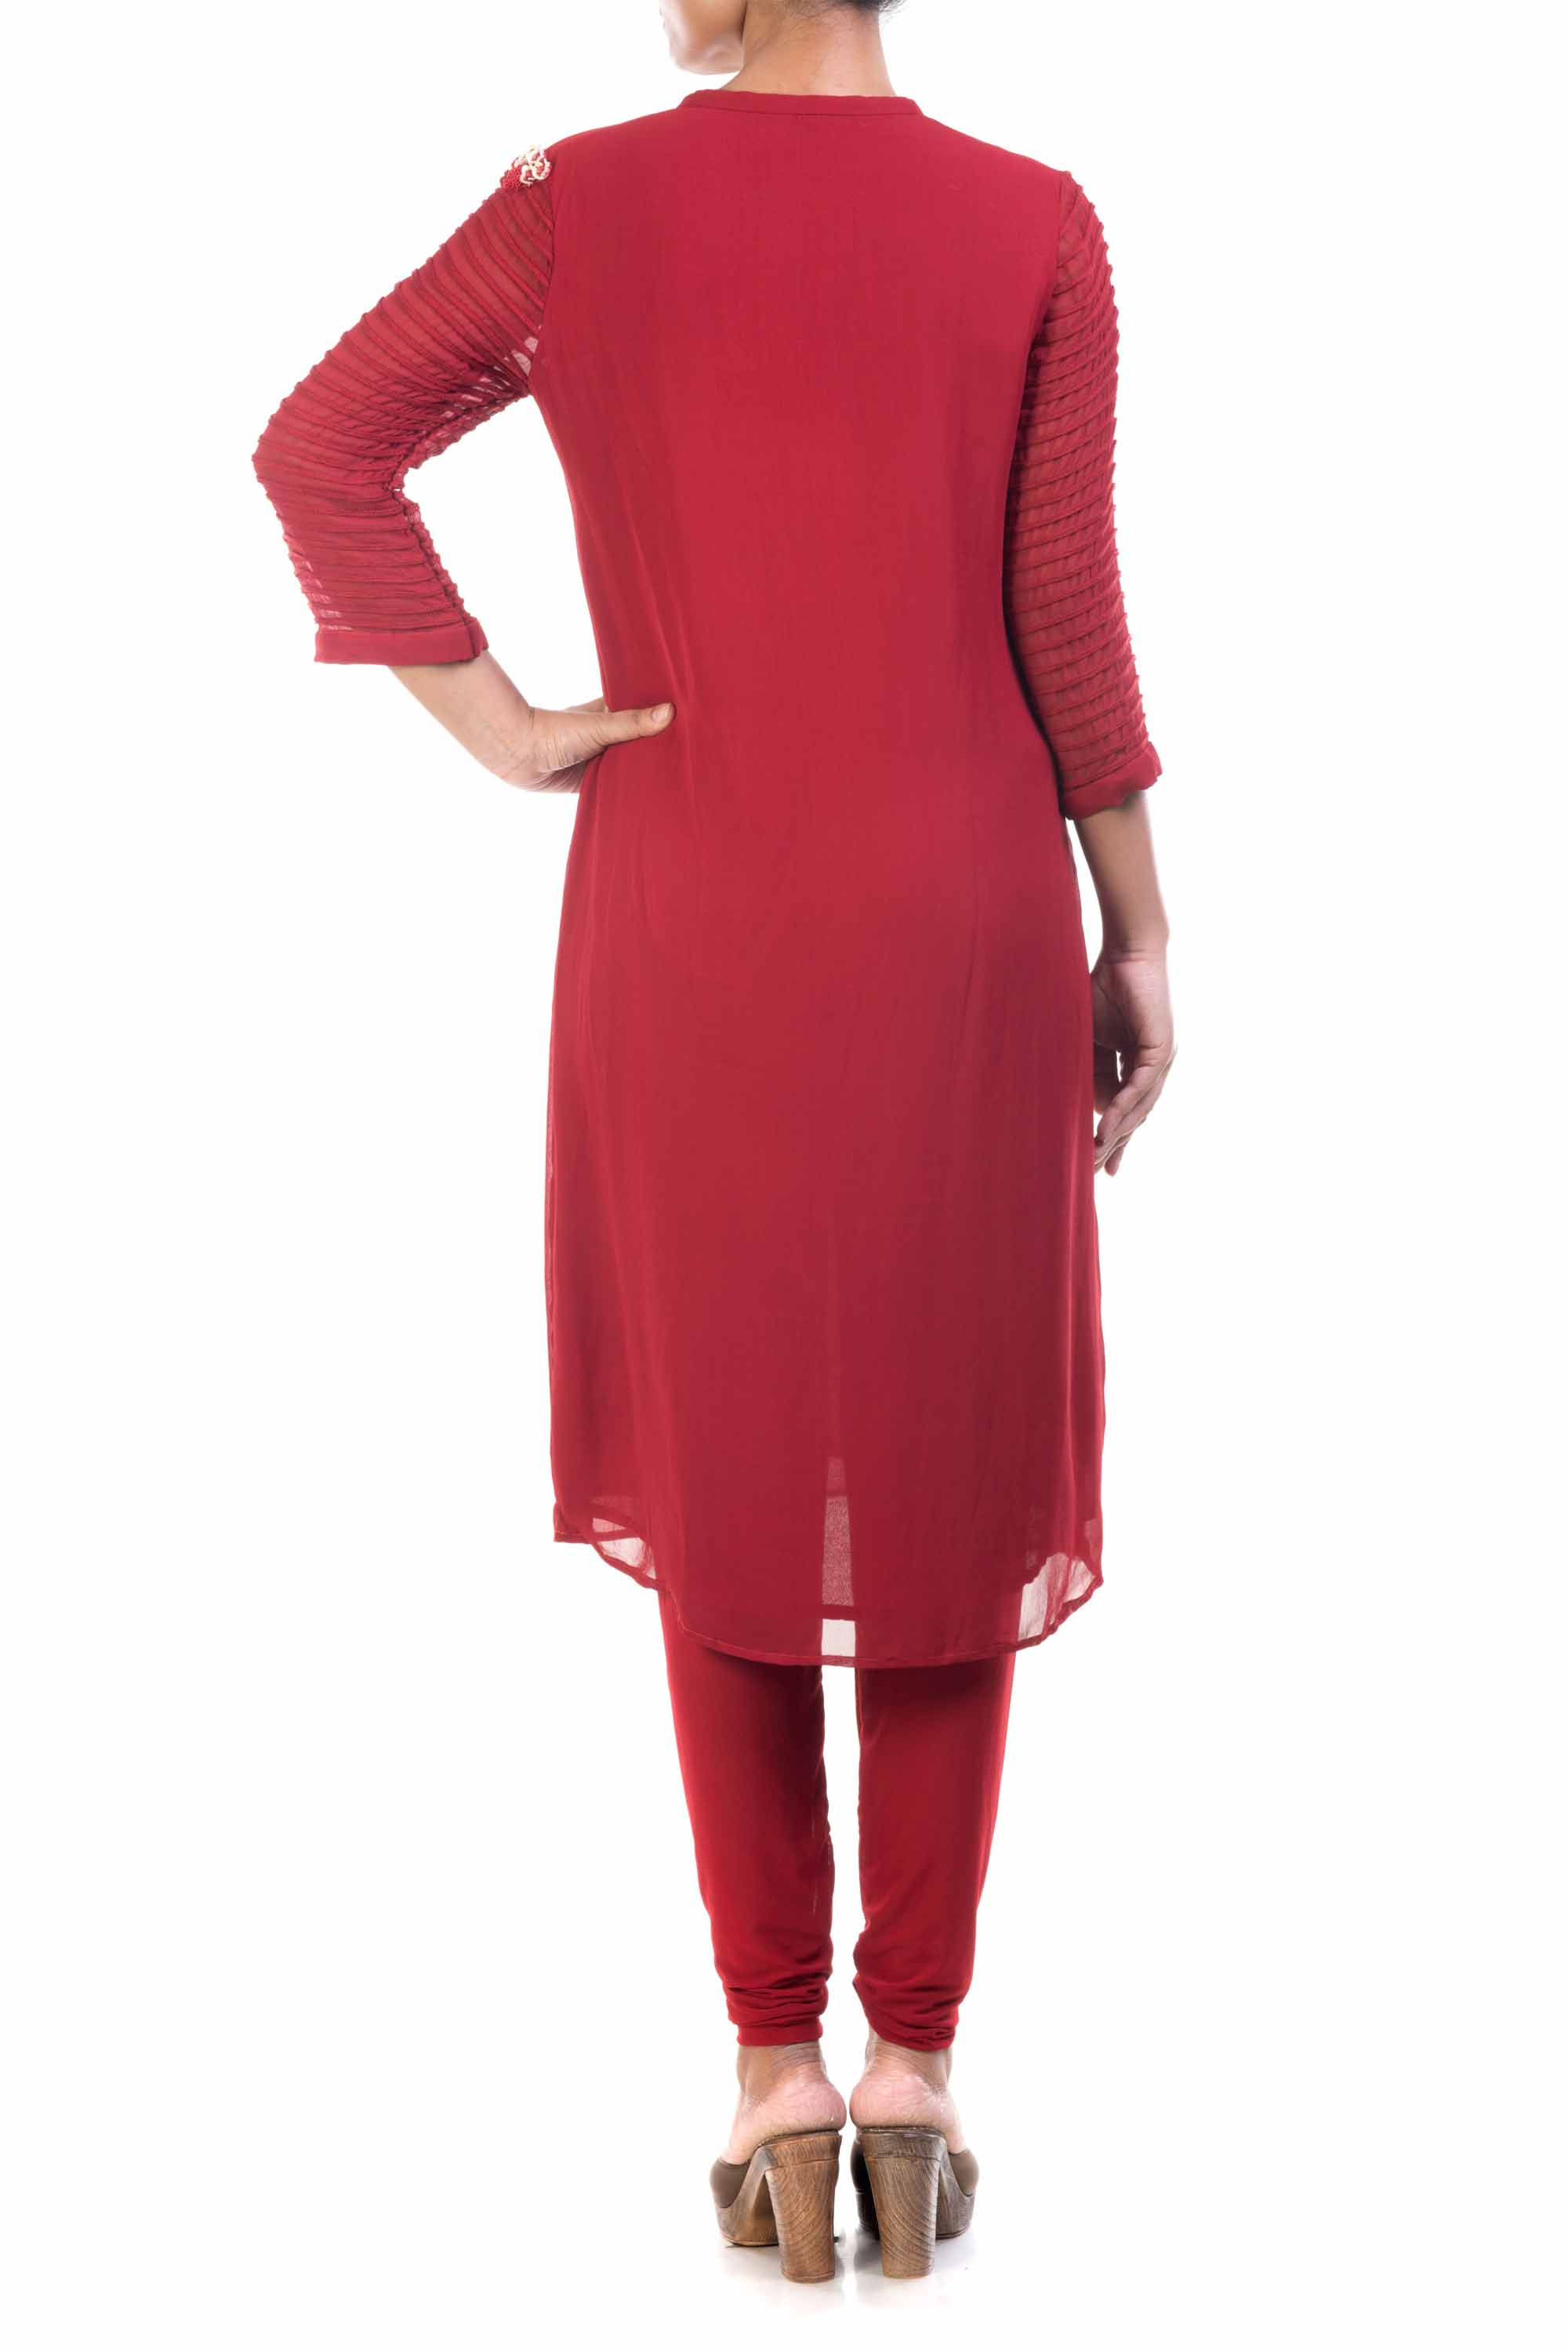 Oxblood Red Georgette Straight Tunic Back